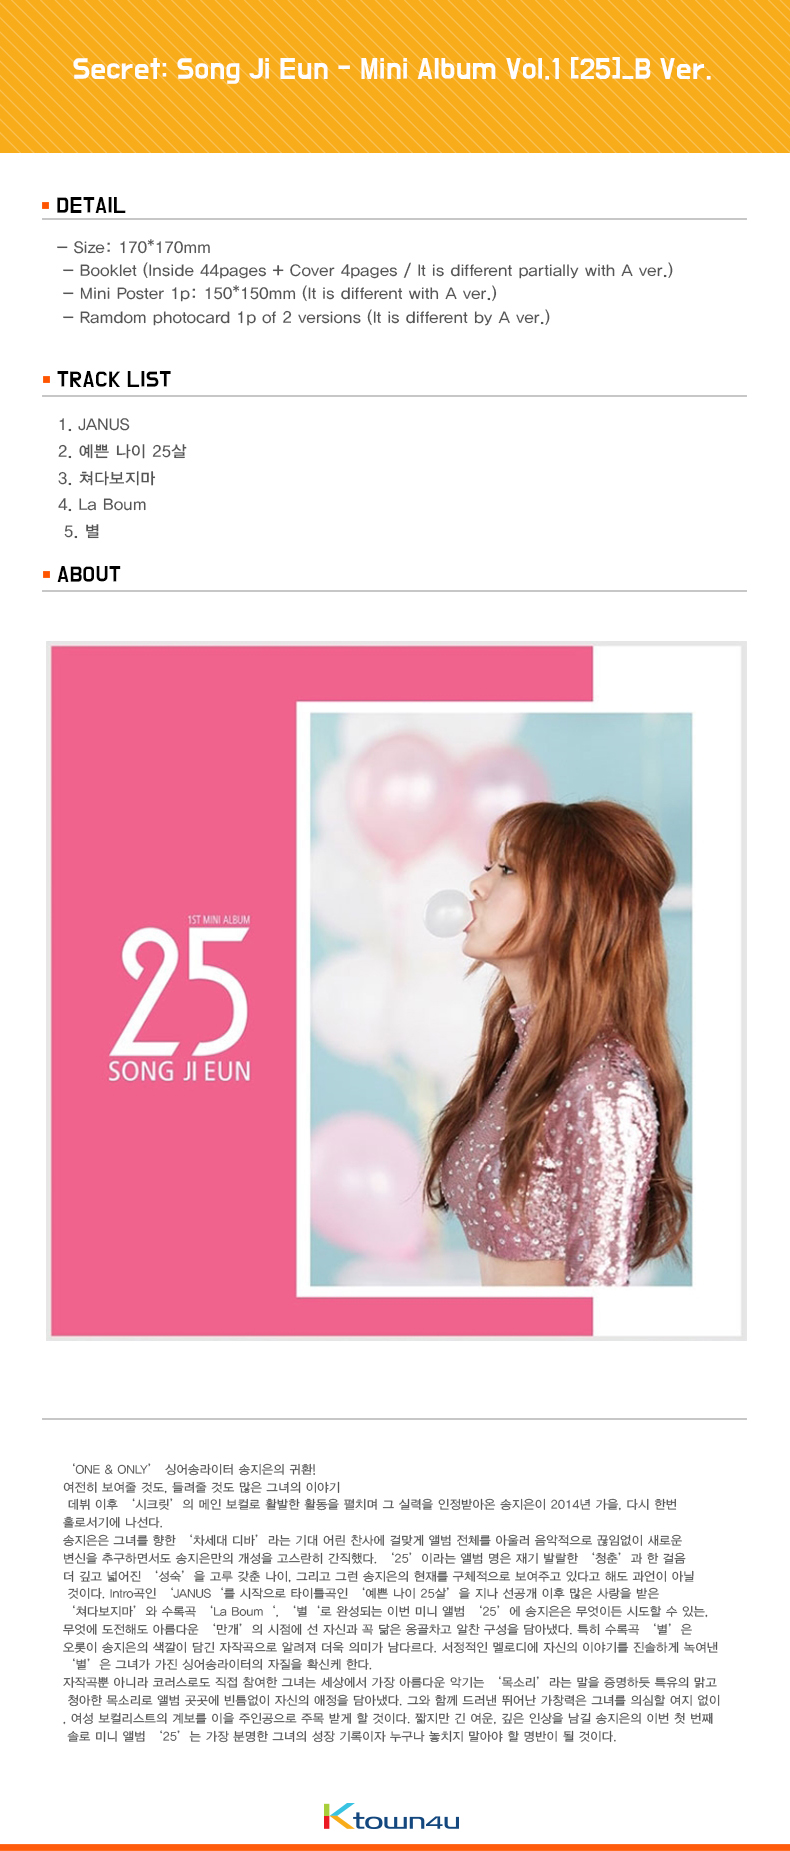 Secret: Song Ji Eun - Mini Album Vol.1 [25]_B Ver.